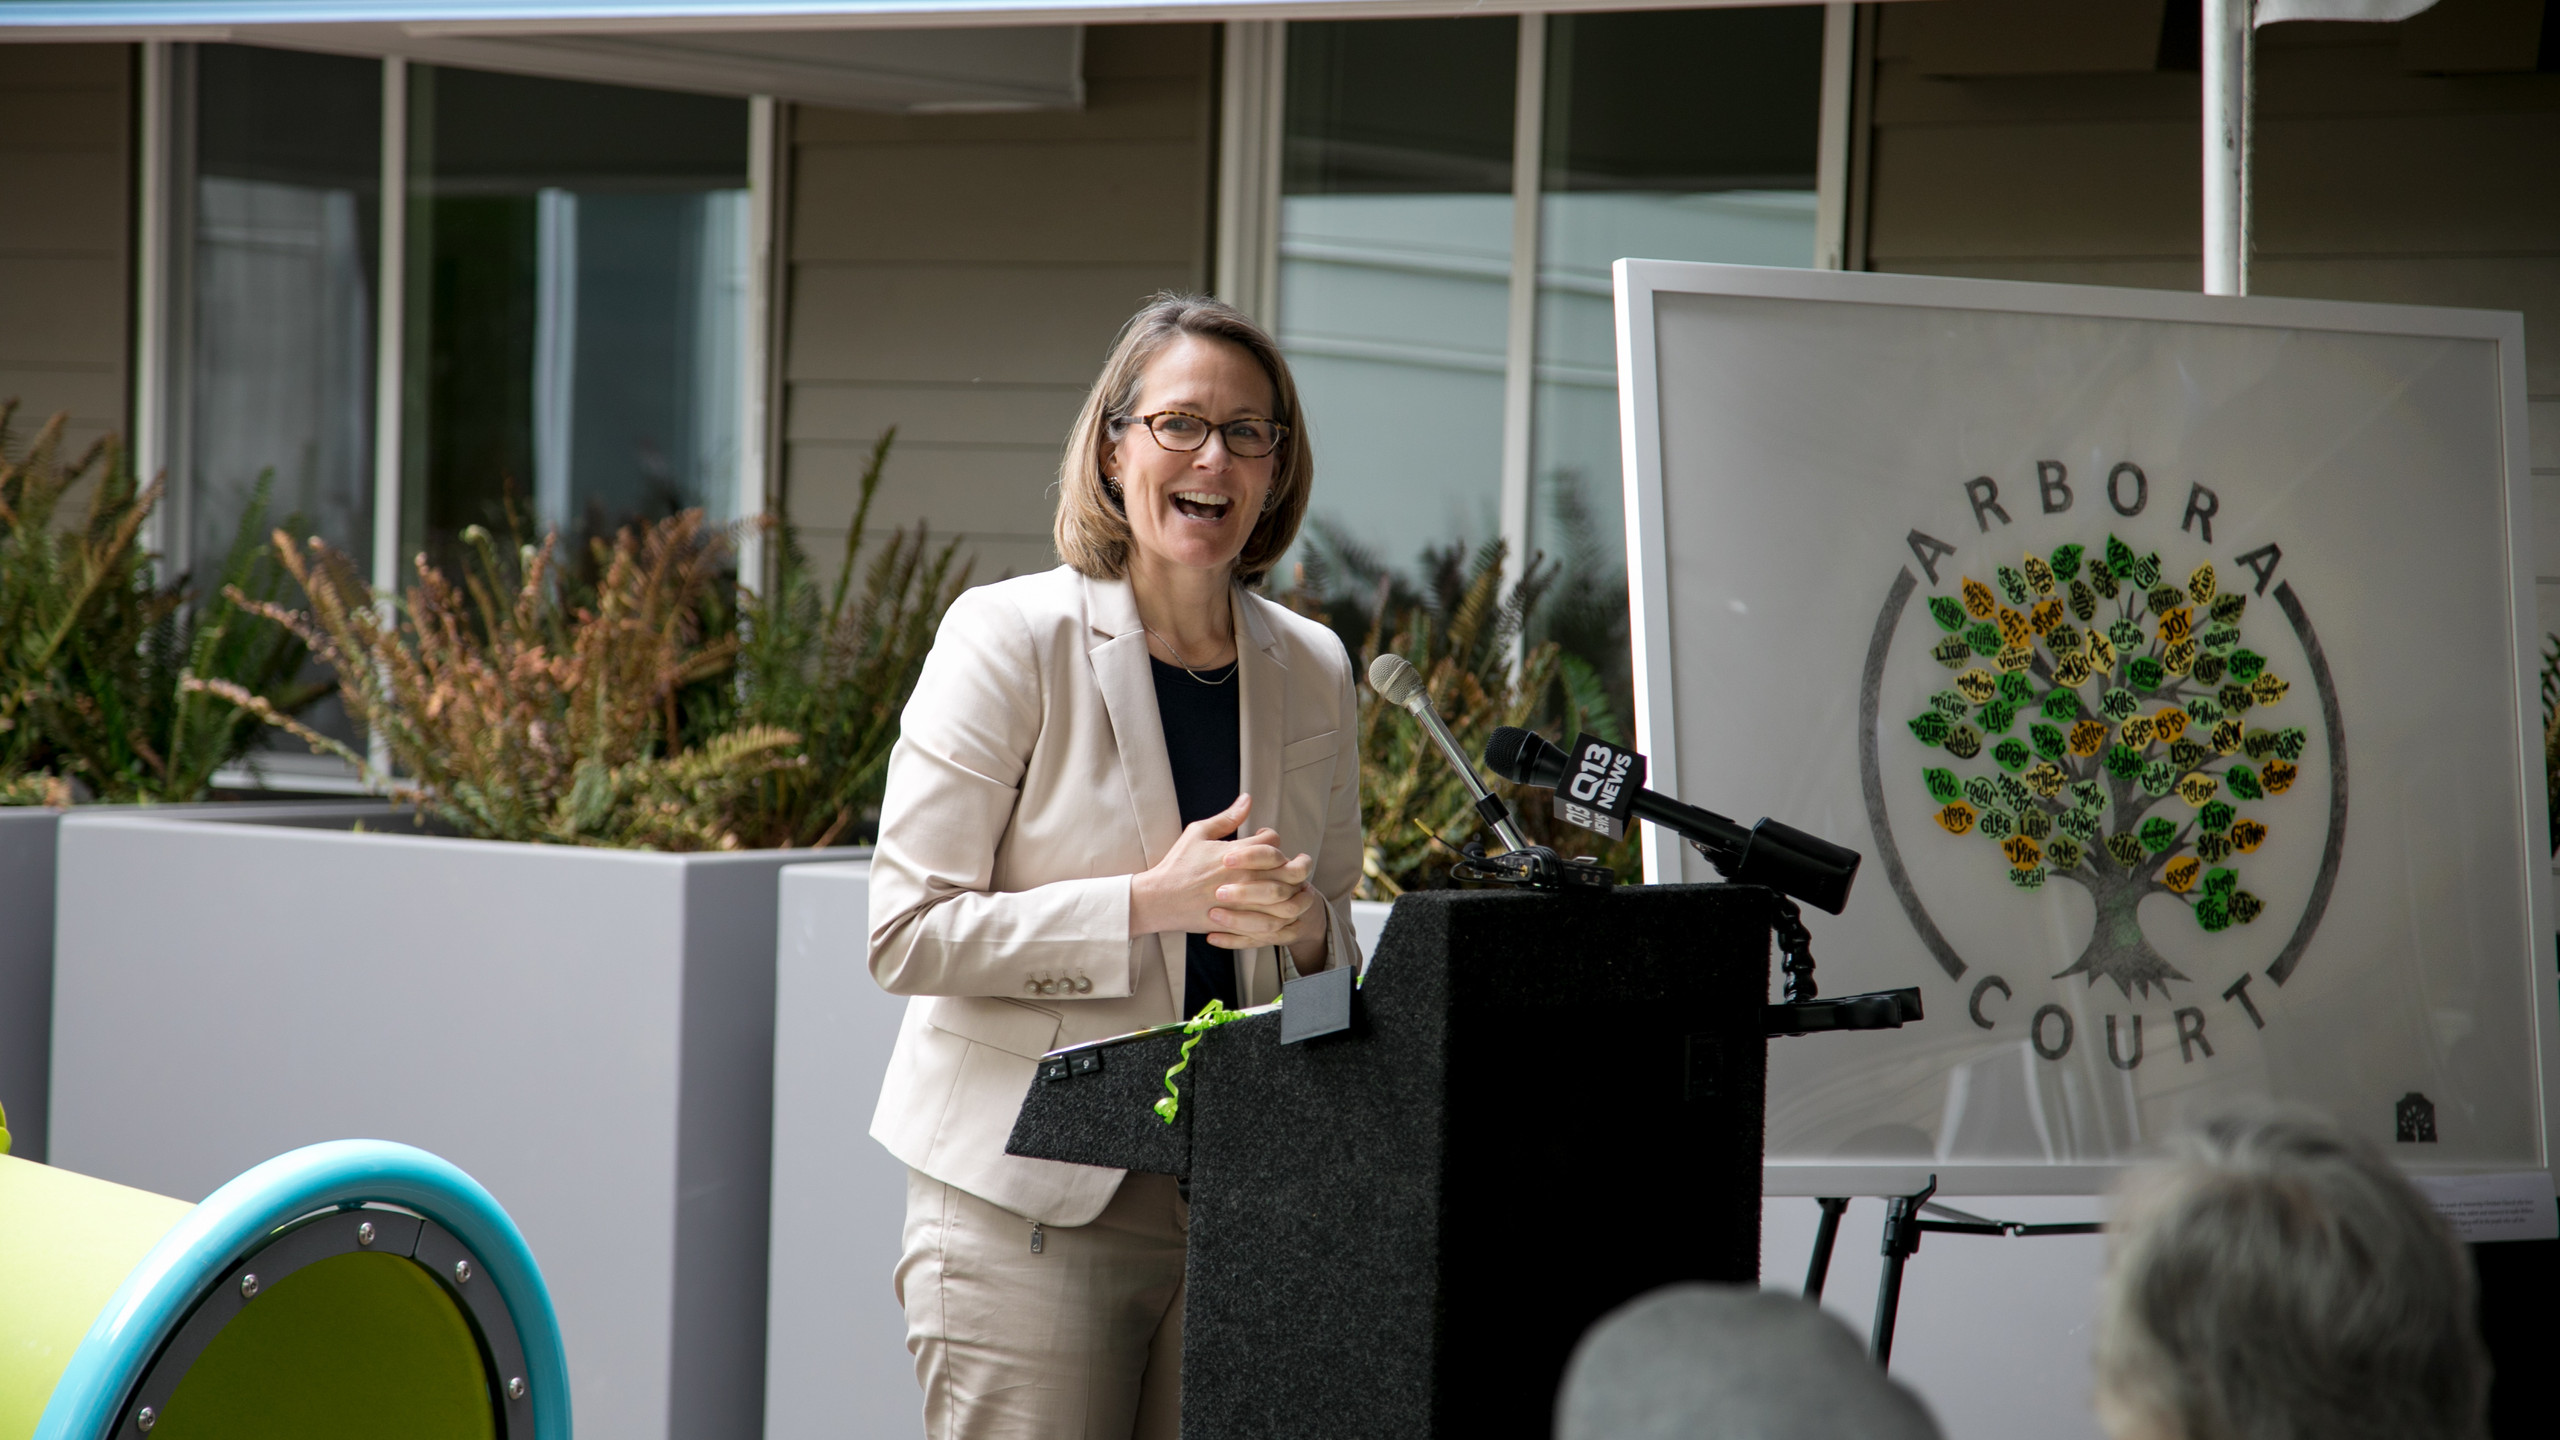 Bellwether CEO Susan Boyd speaks at the opening celebration of Arbora Court on May 8, 2018.